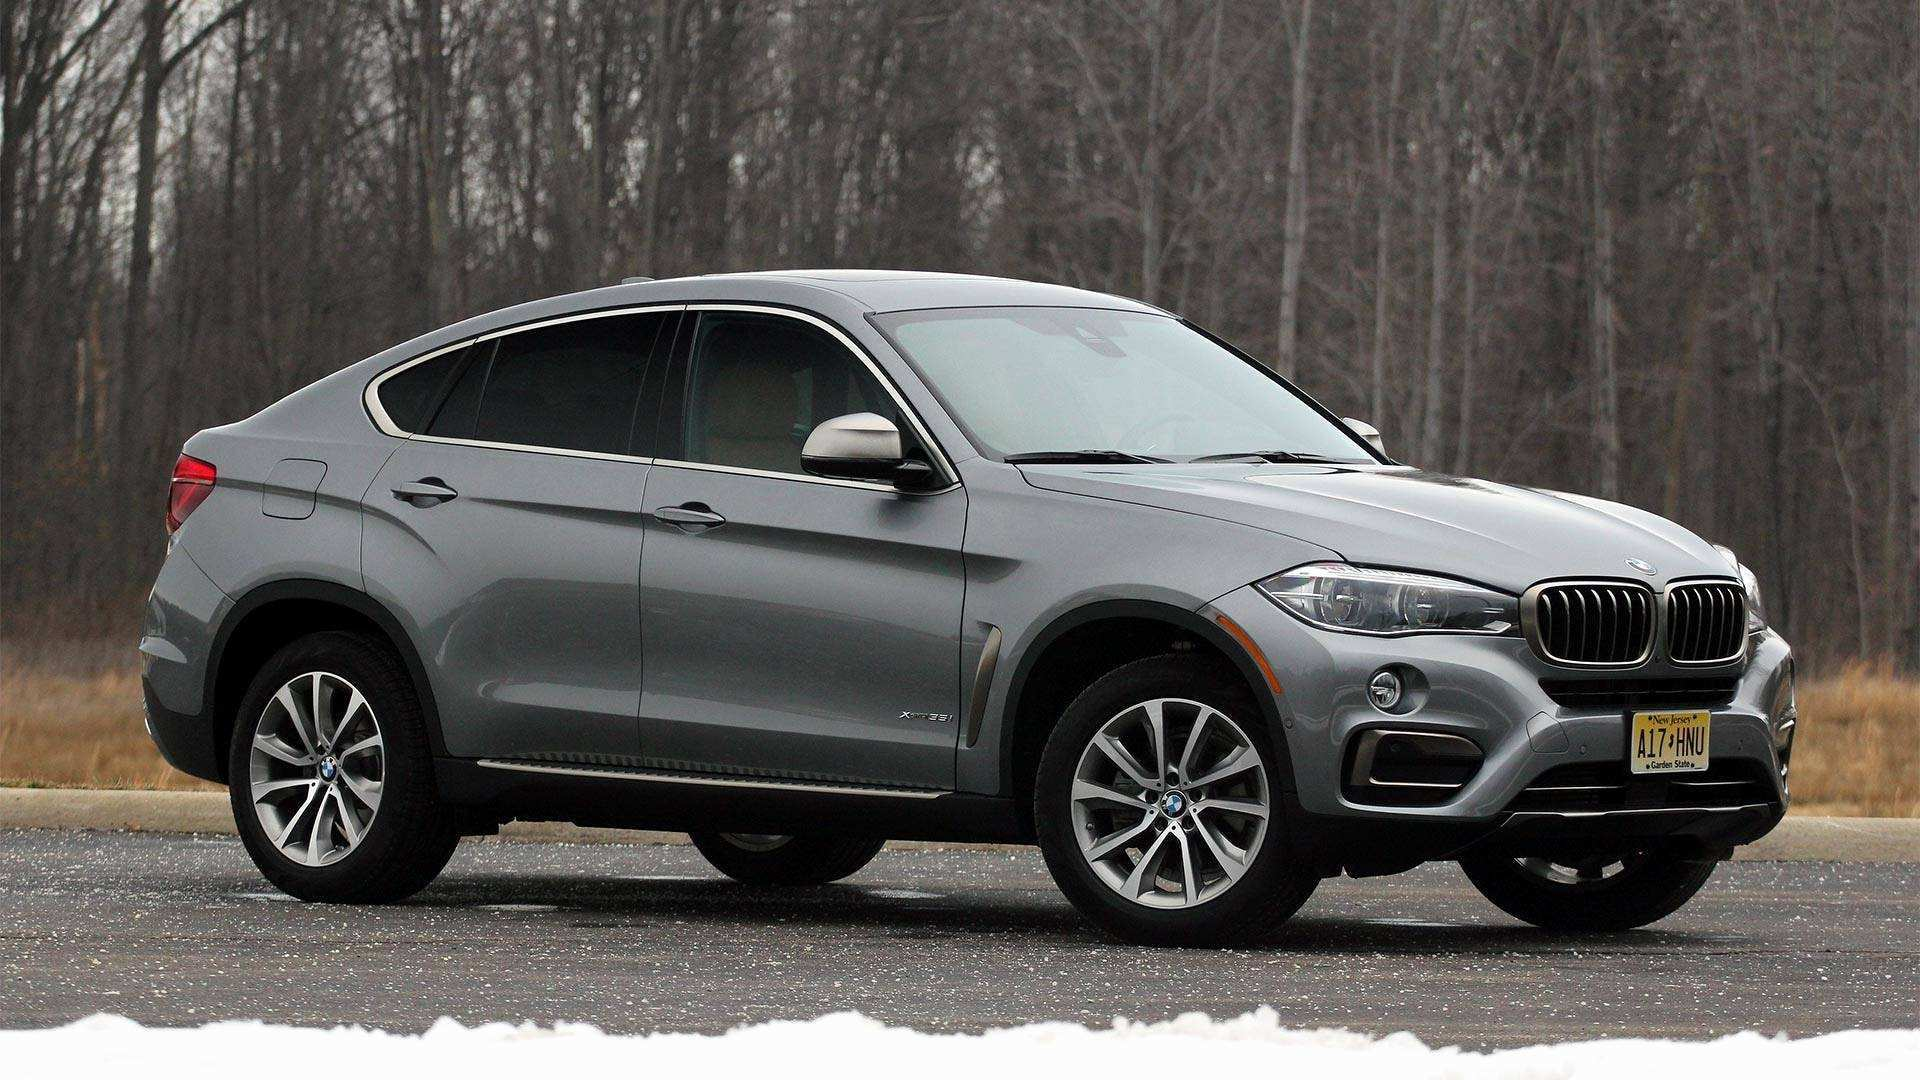 64 All New BMW X62019 Wallpaper